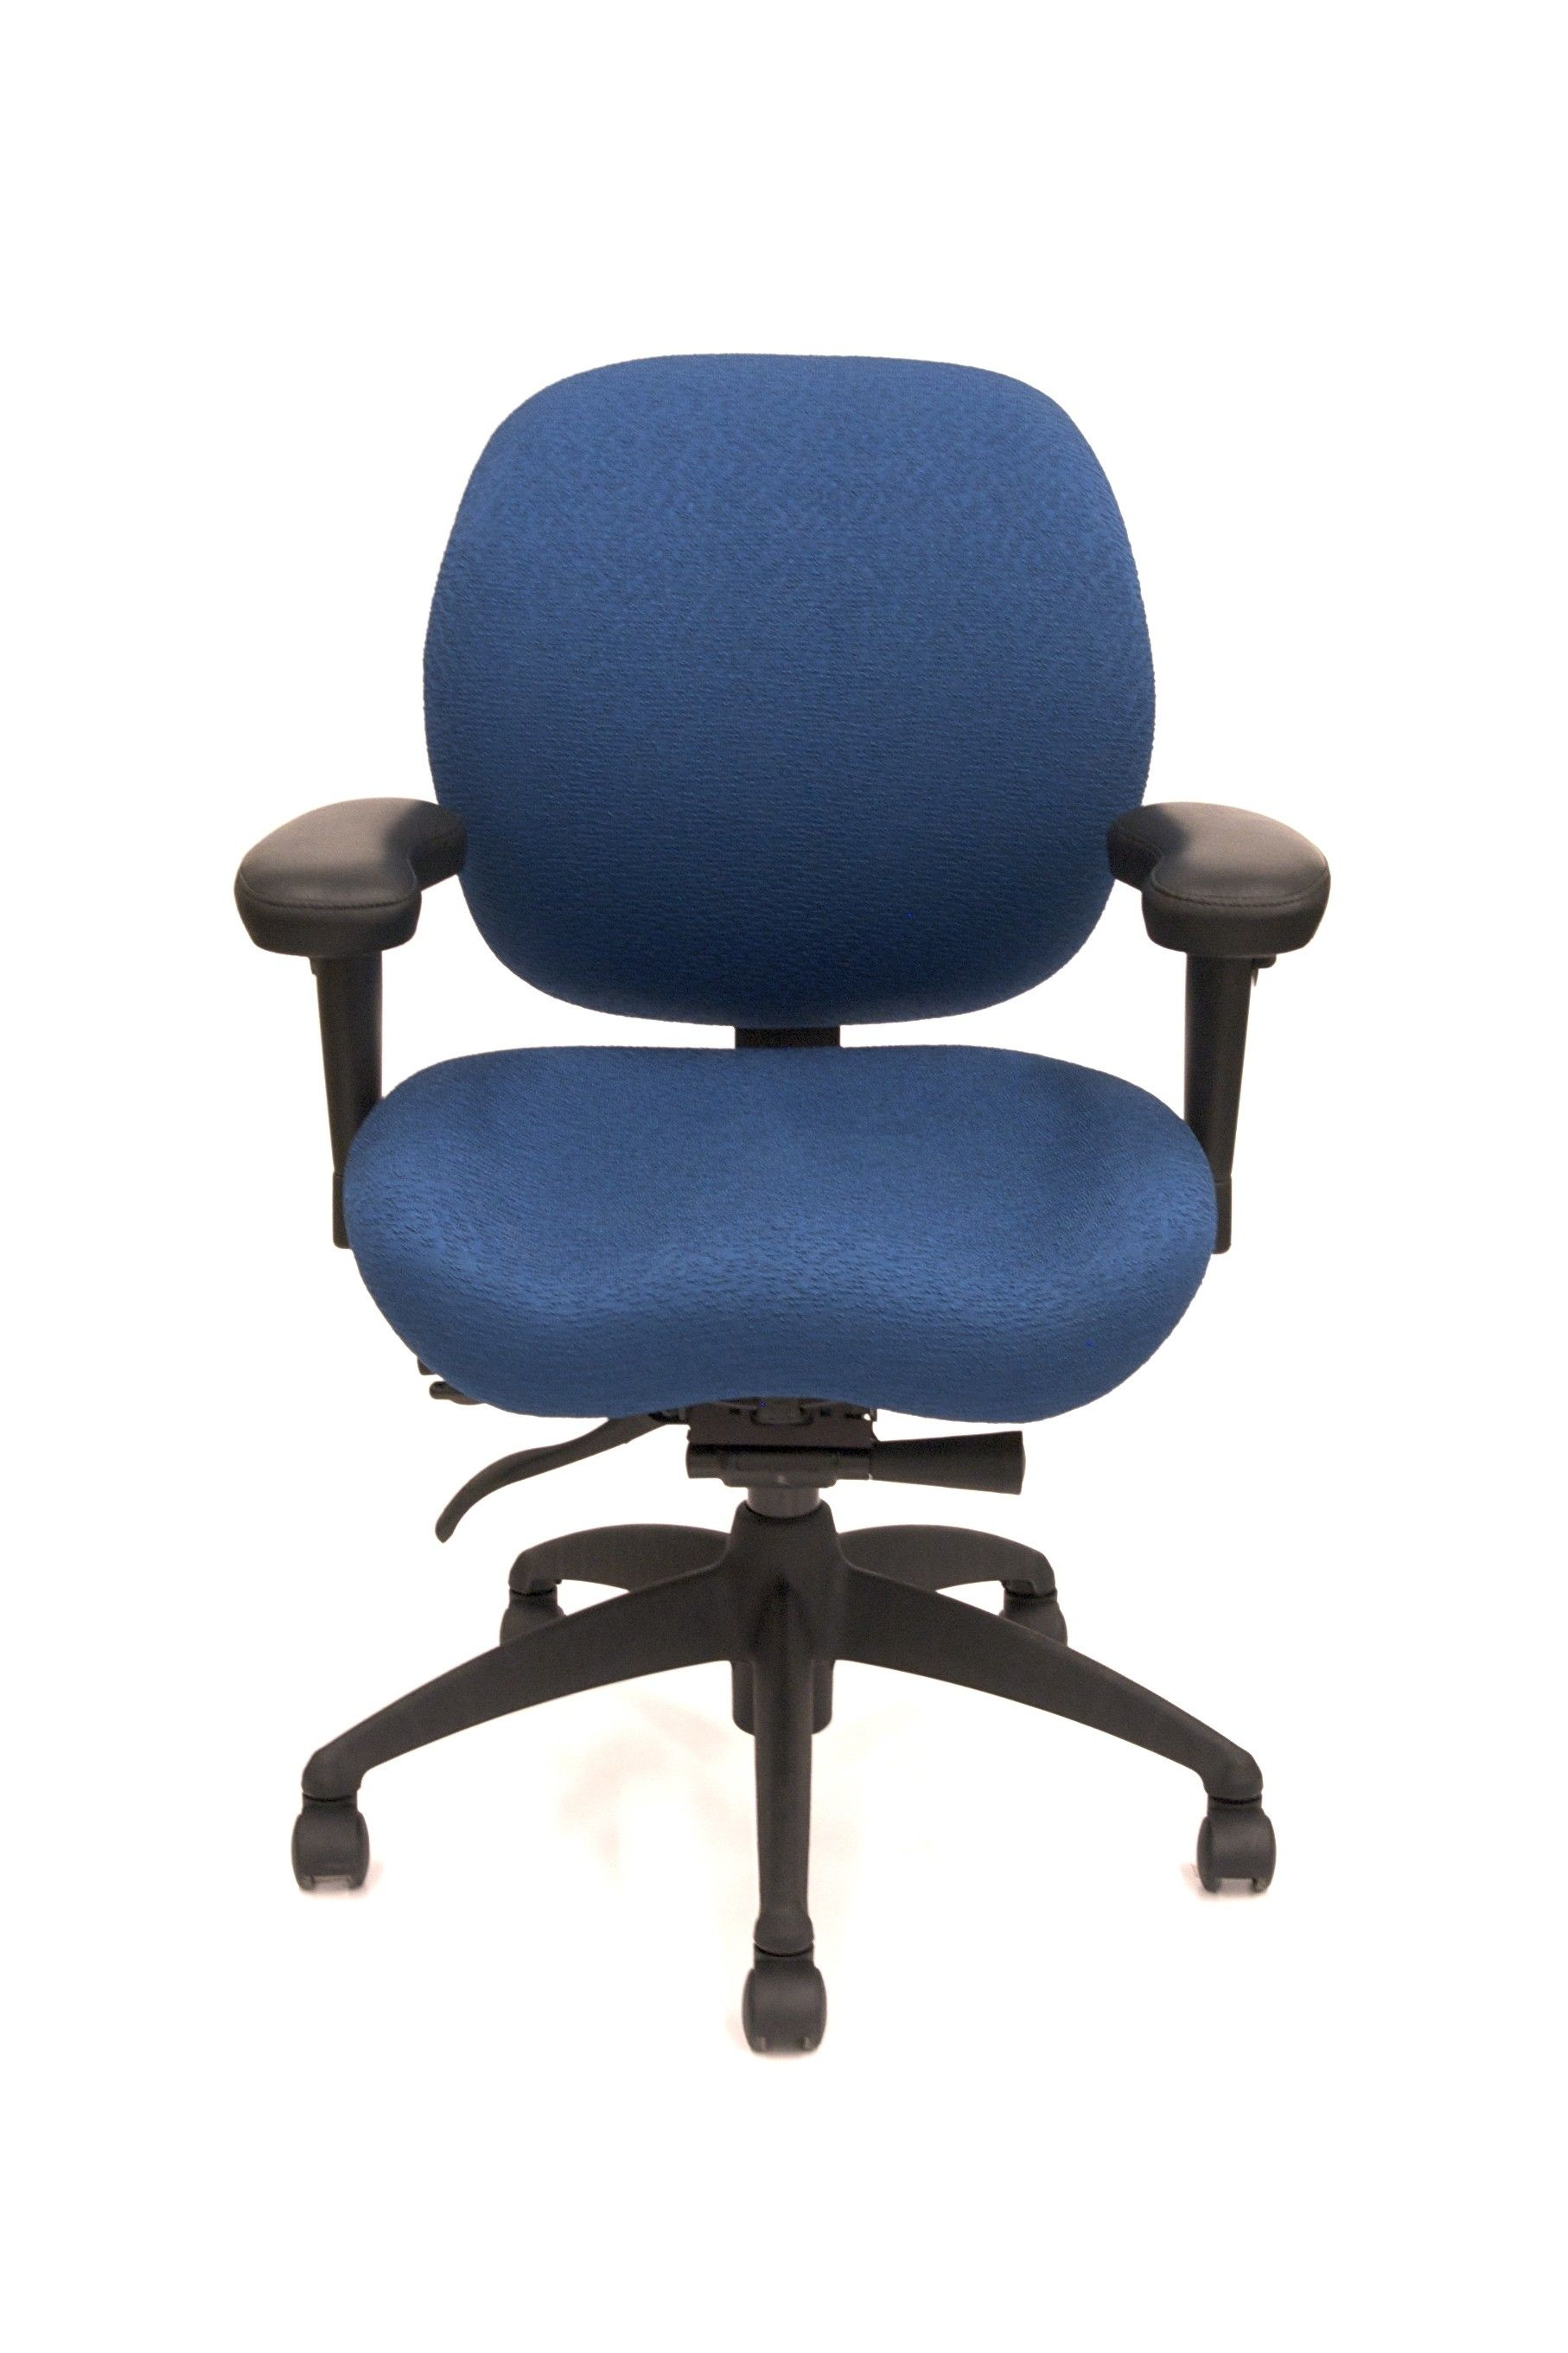 office chair very crate and barrel chairs canada lifeform management grand 995 i sat in it comfortable not sure what color though